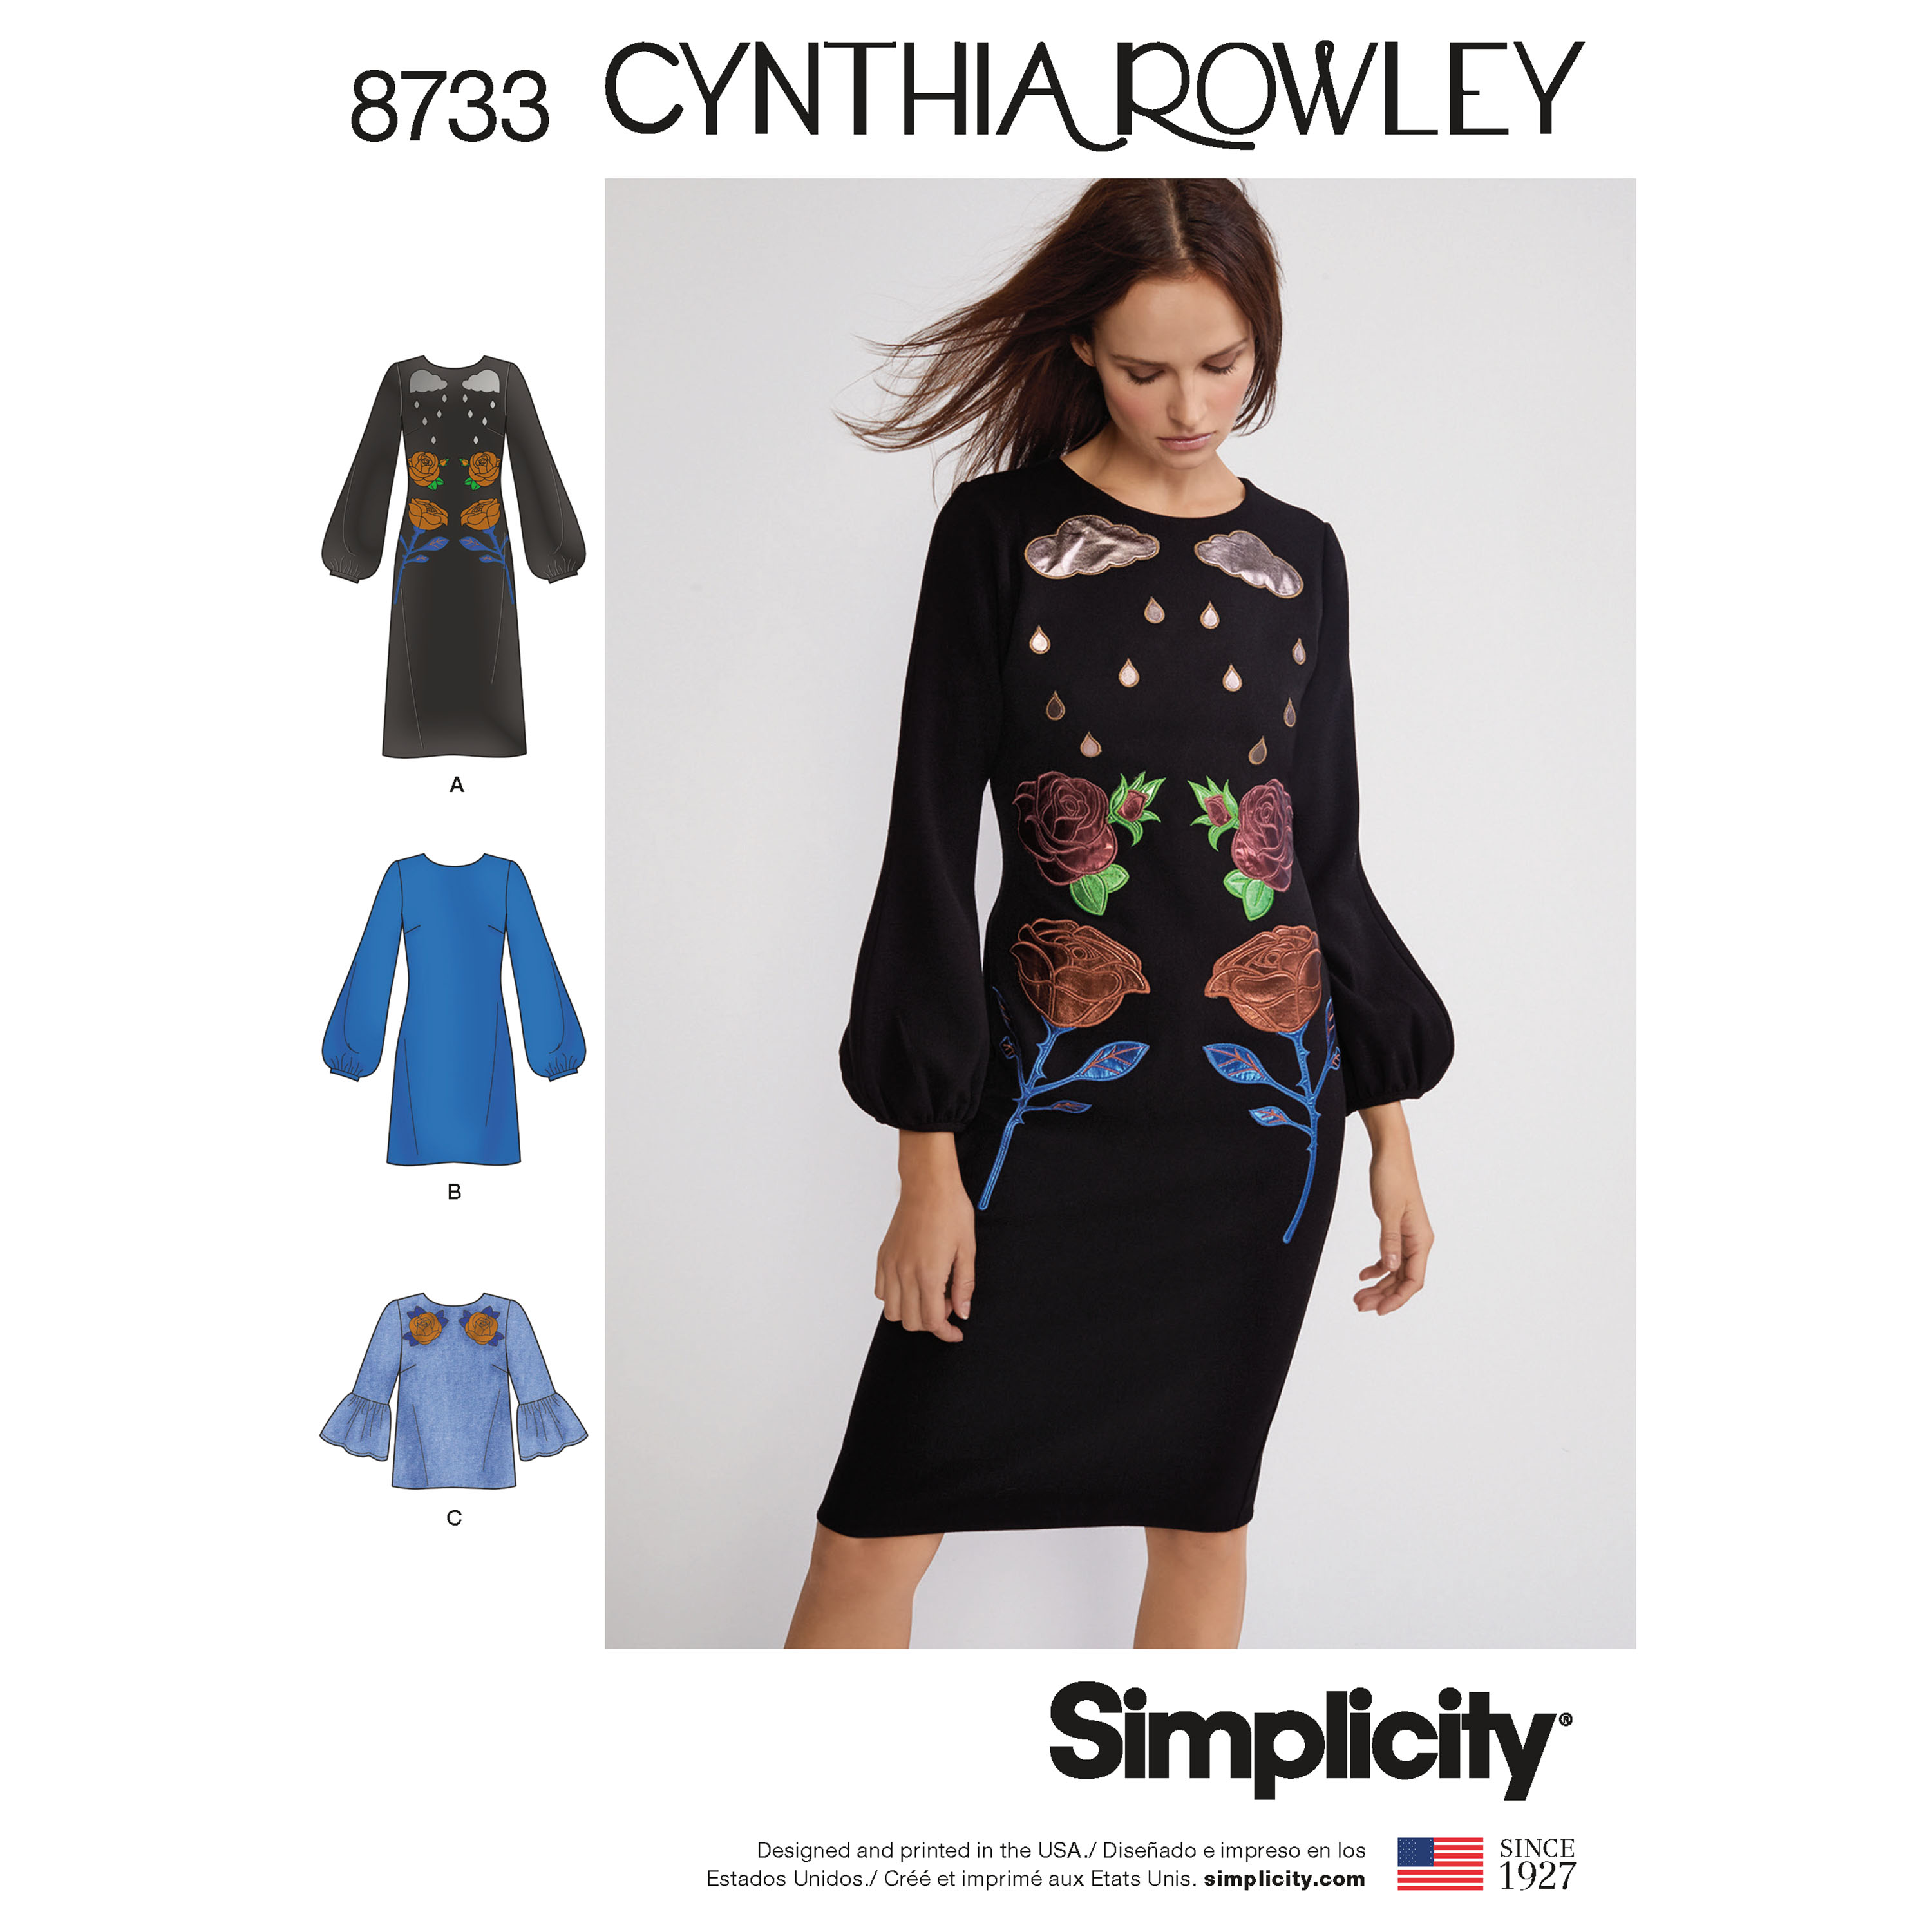 Cynthia Rowley Sewing Patterns: Simplicity 8733 Misses' Cynthia Rowley Dress And Top